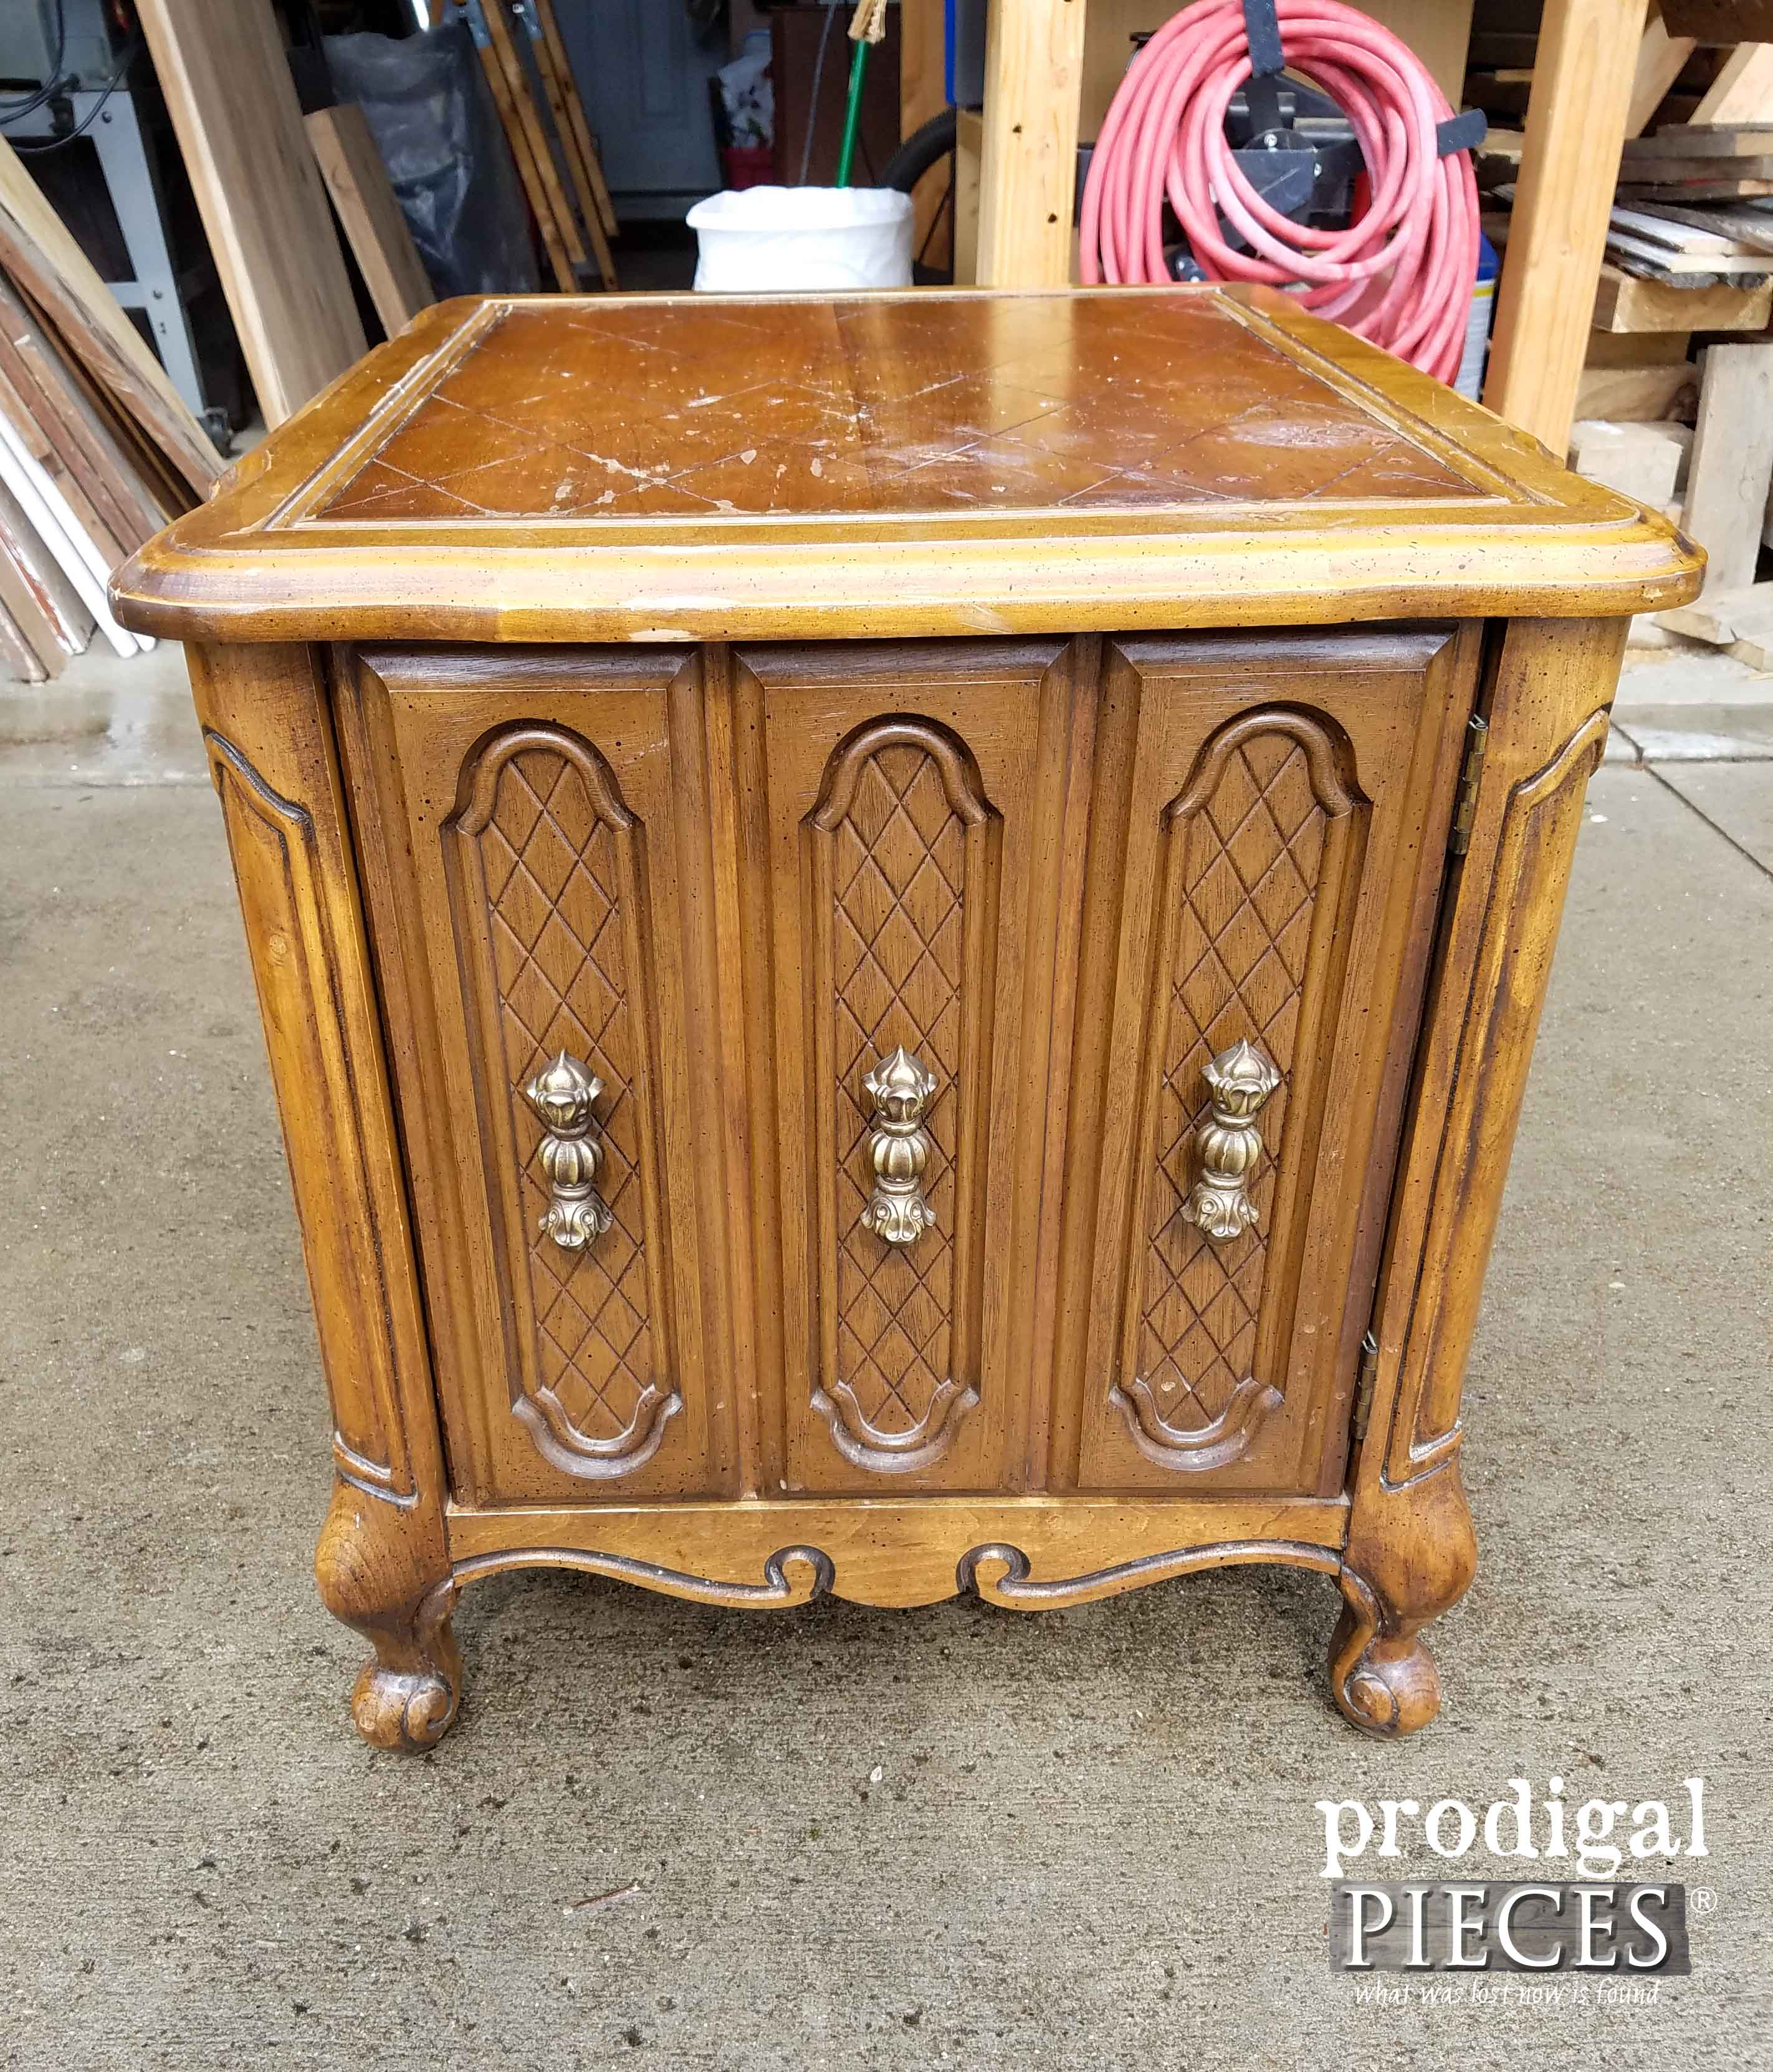 Vintage Nightstand Before Makeover by Prodigal Pieces | prodigalpieces.com